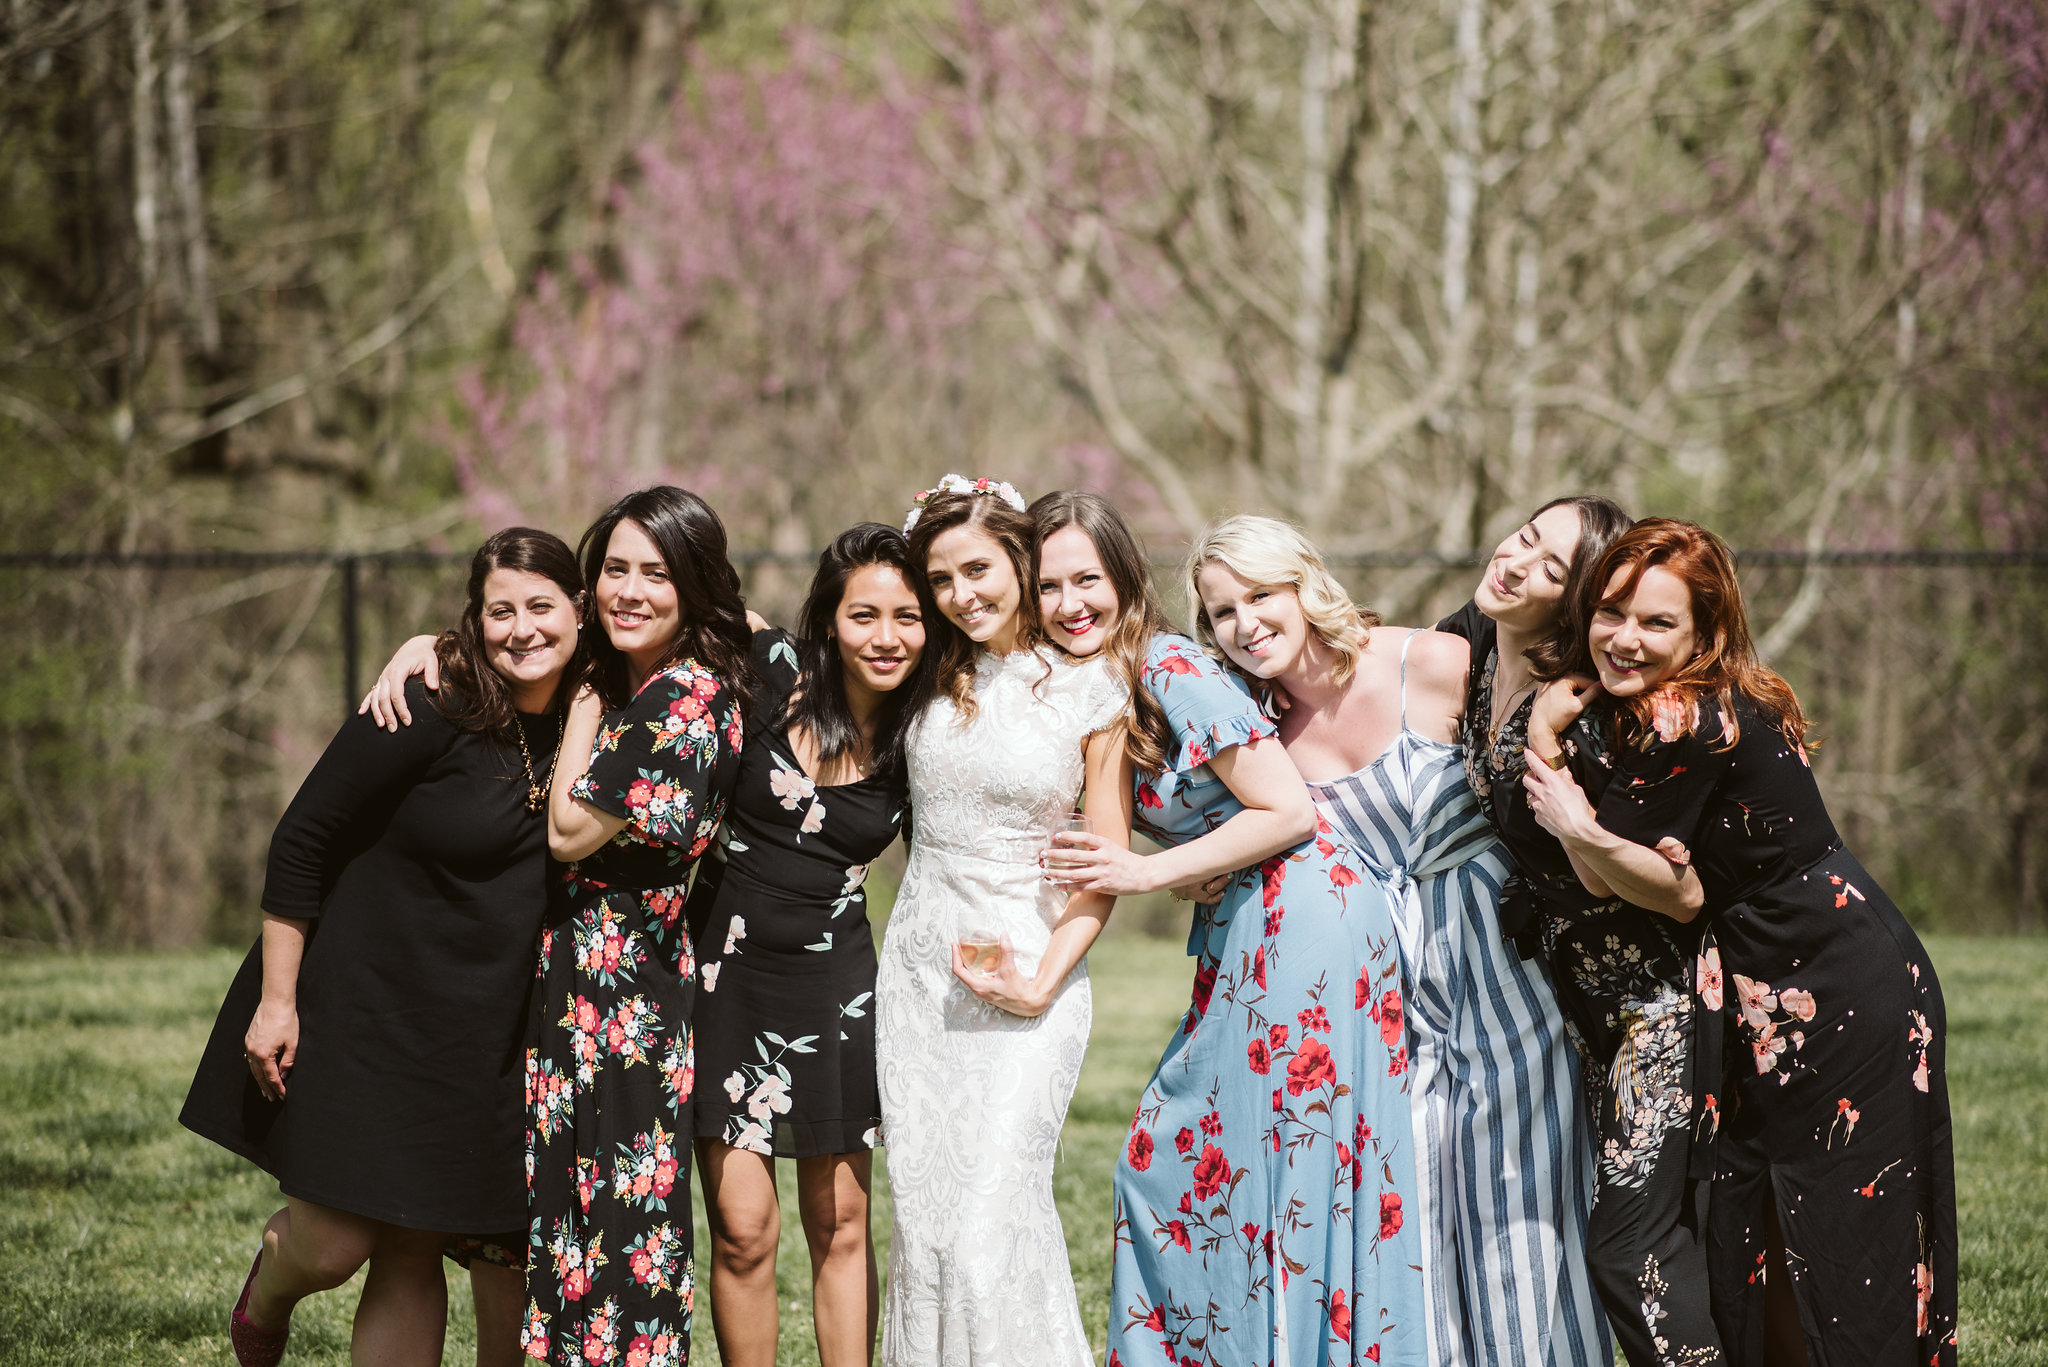 Spring Outdoor Wedding, Park, Baltimore Wedding Photographer, DIY, Classic, Upcycled, Garden Party, Romantic, Cute Photo of Bride with Friends, BHLDN Wedding Dress